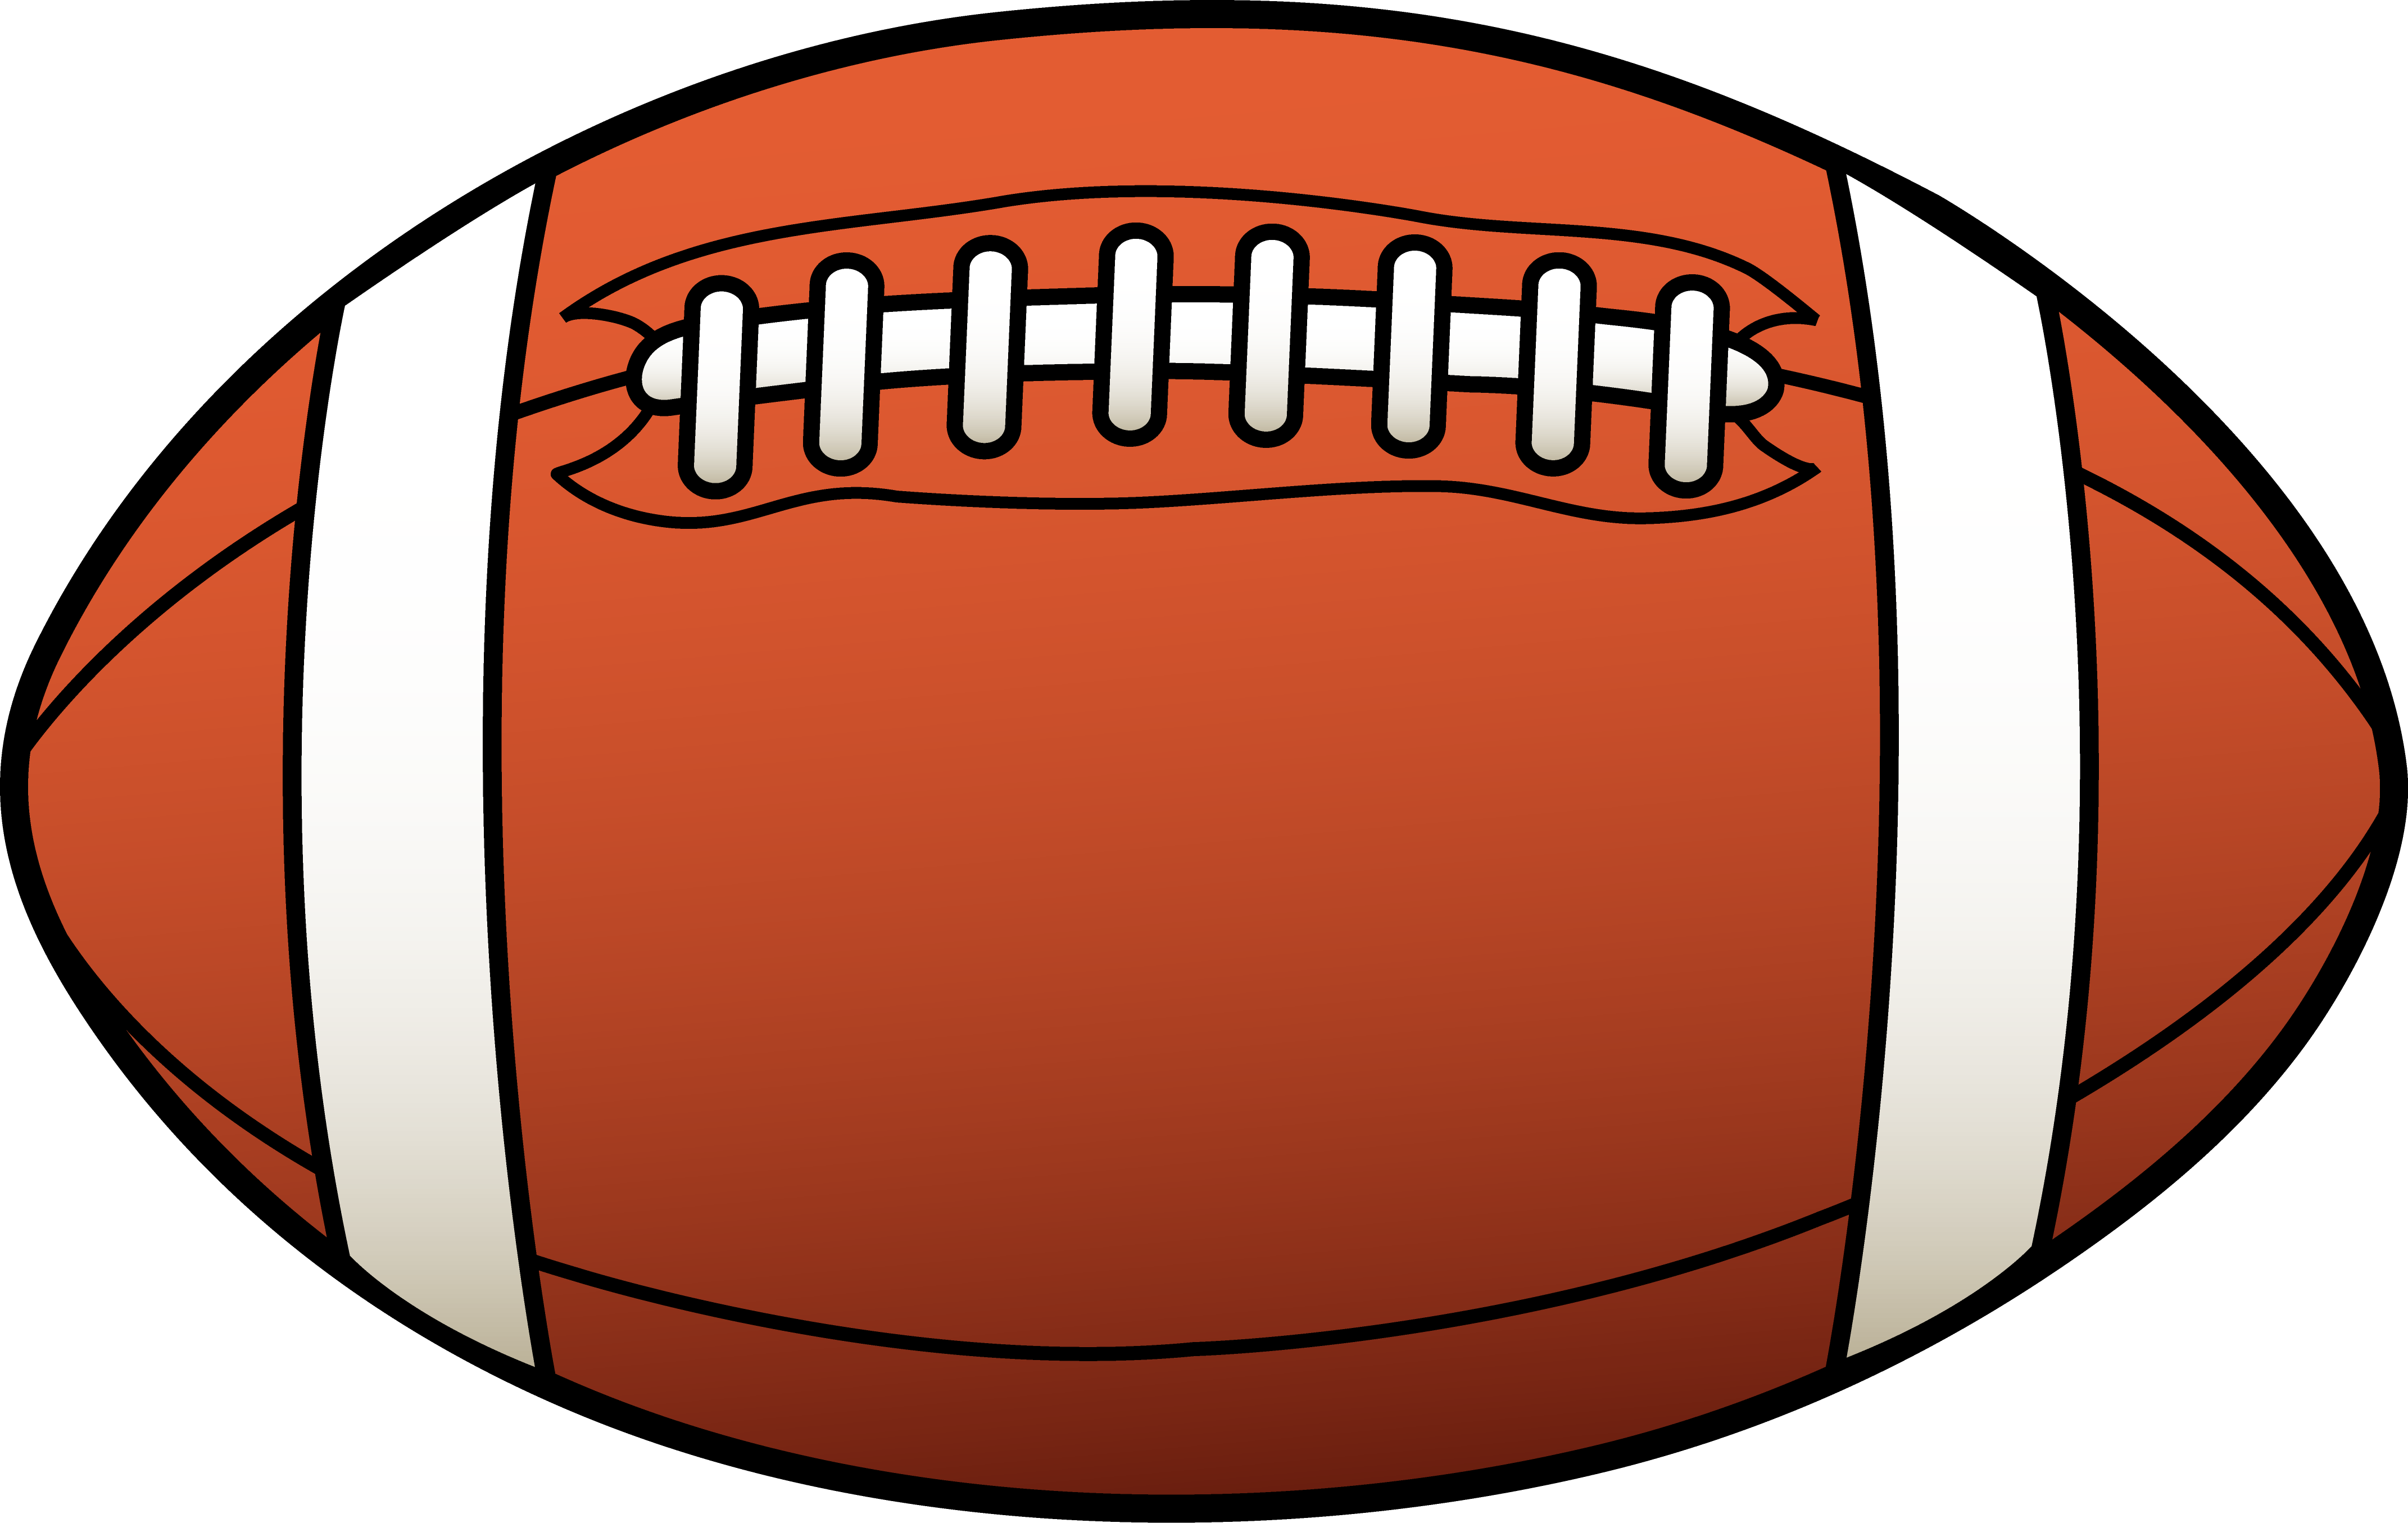 Pictures Of Football